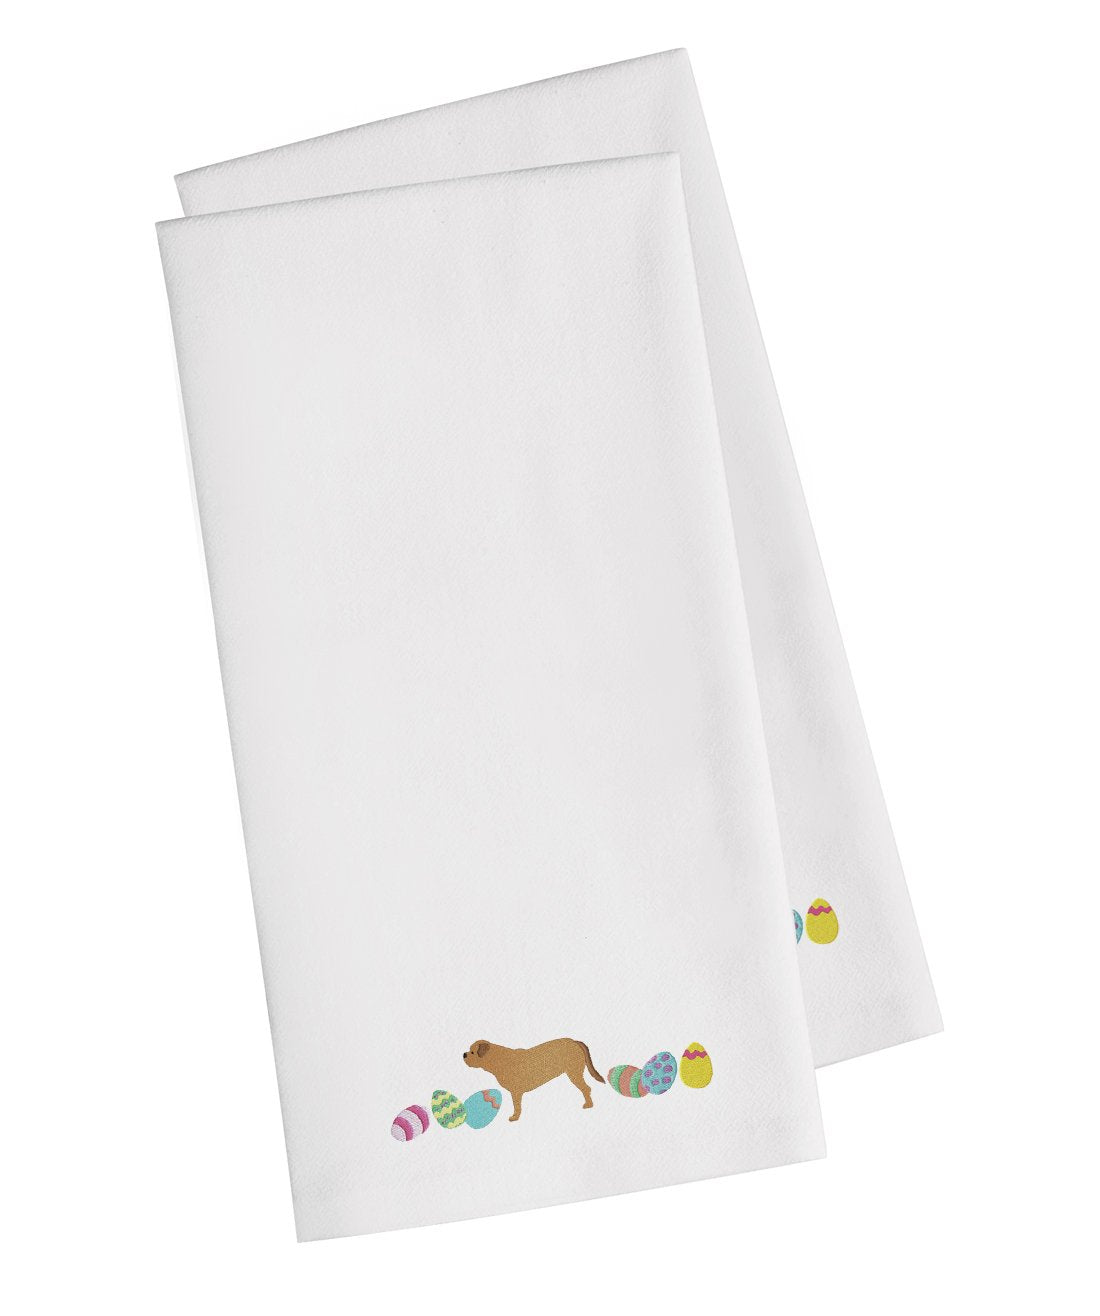 Buy this Dogue de Bordeaux Easter White Embroidered Kitchen Towel Set of 2 CK1635WHTWE